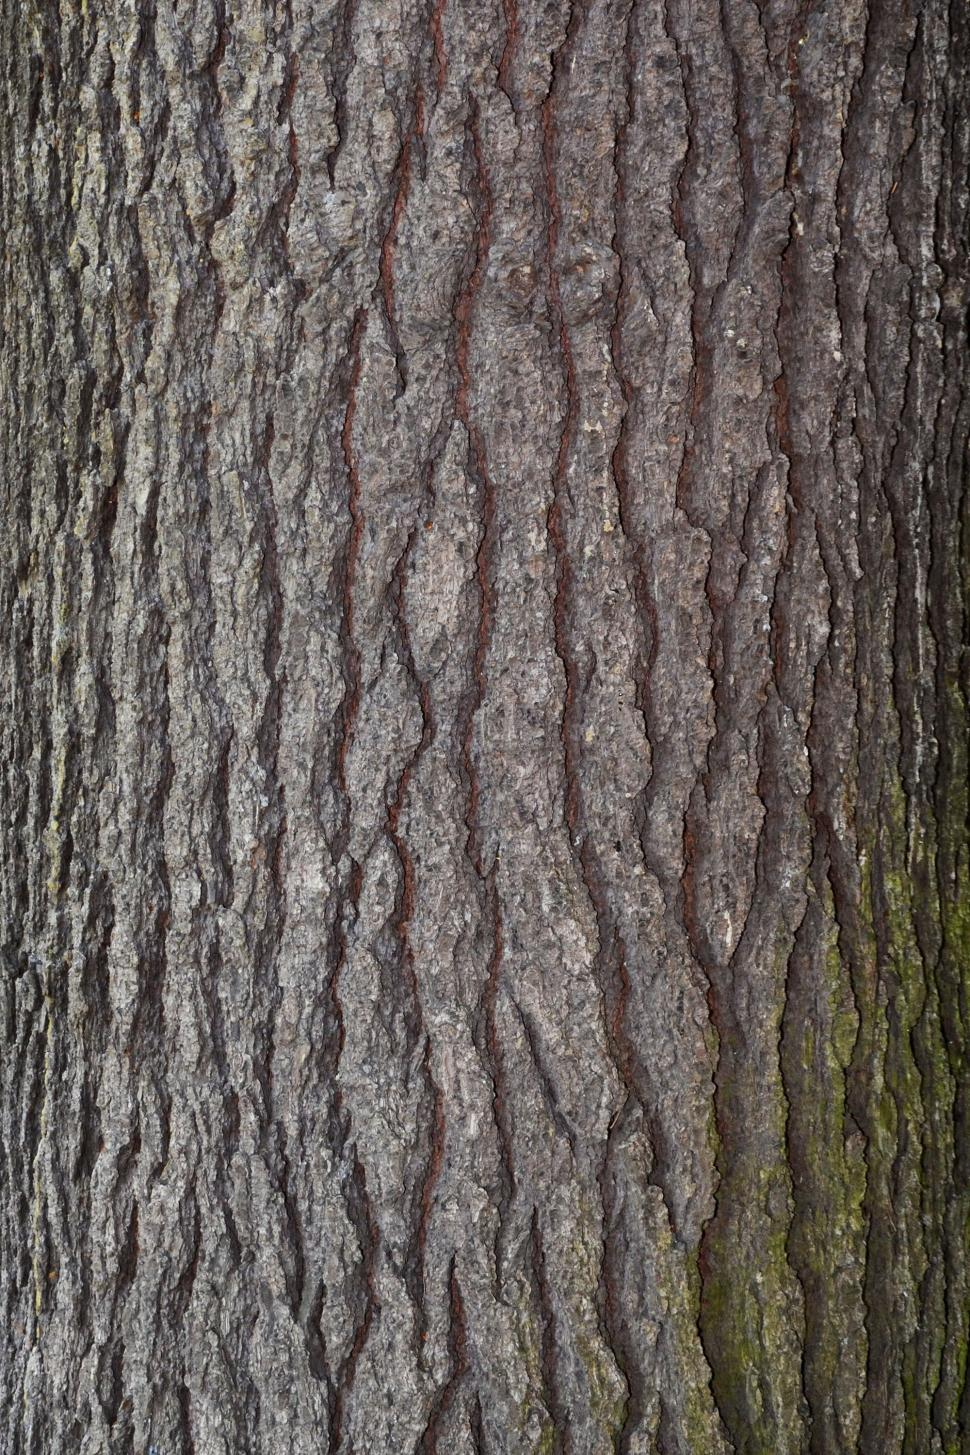 Download Free Stock HD Photo of Bark of eastern white pine Online